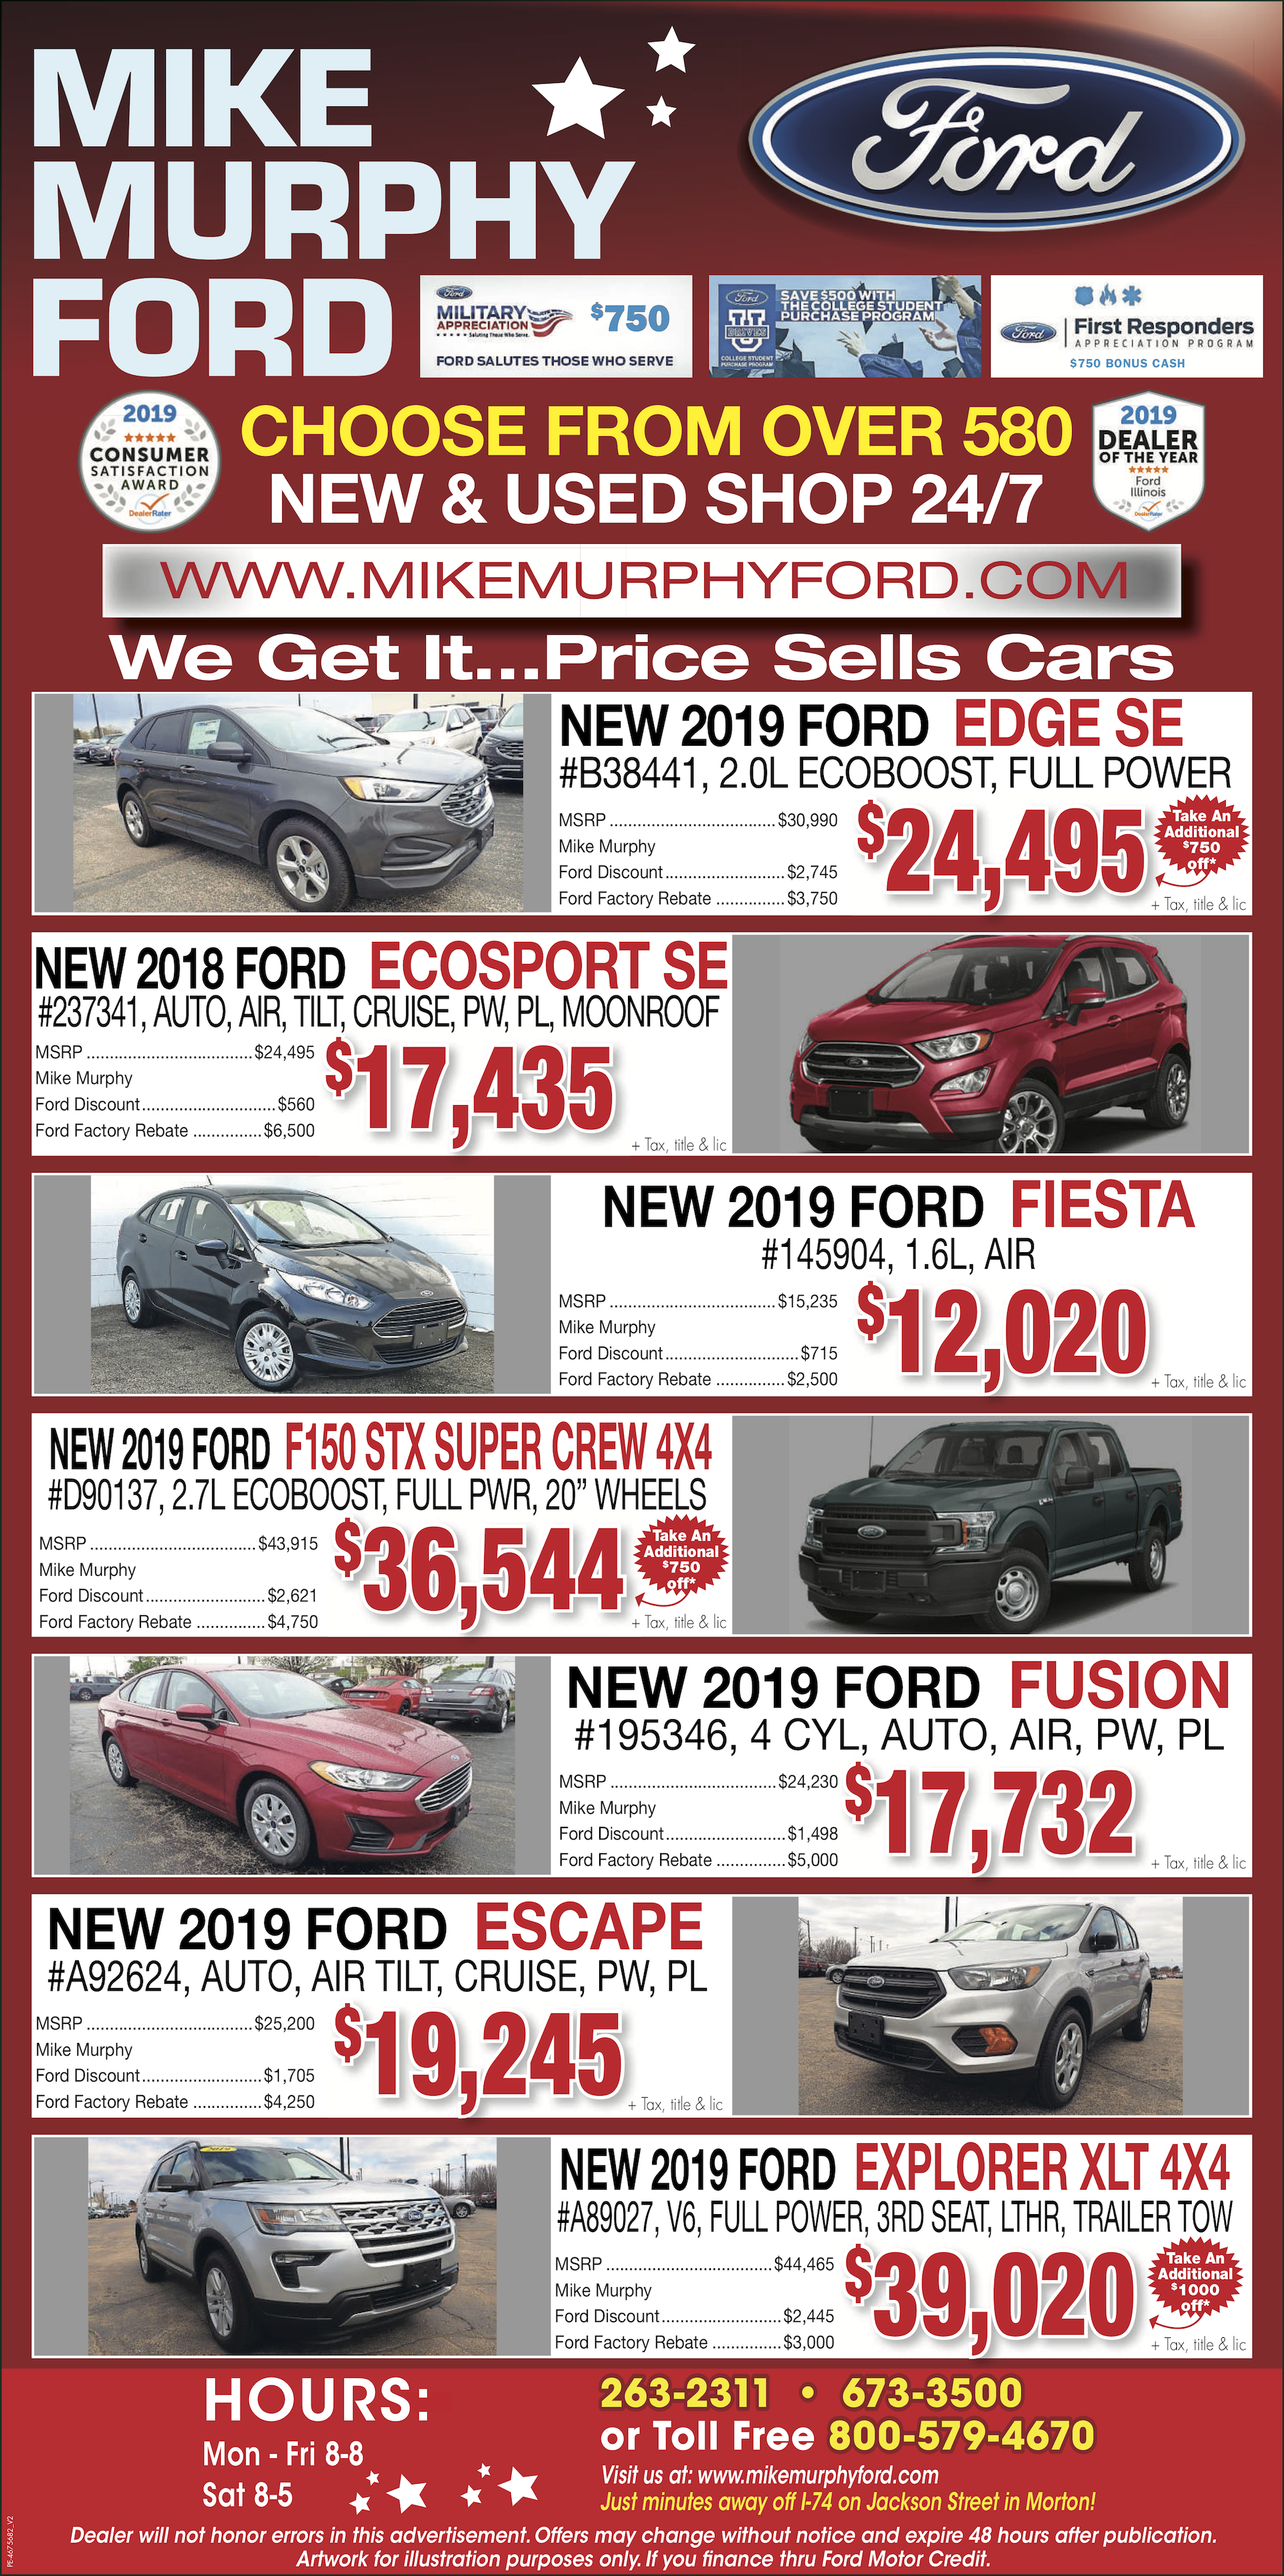 Mike Murphy Ford.New Vehicles.2.22